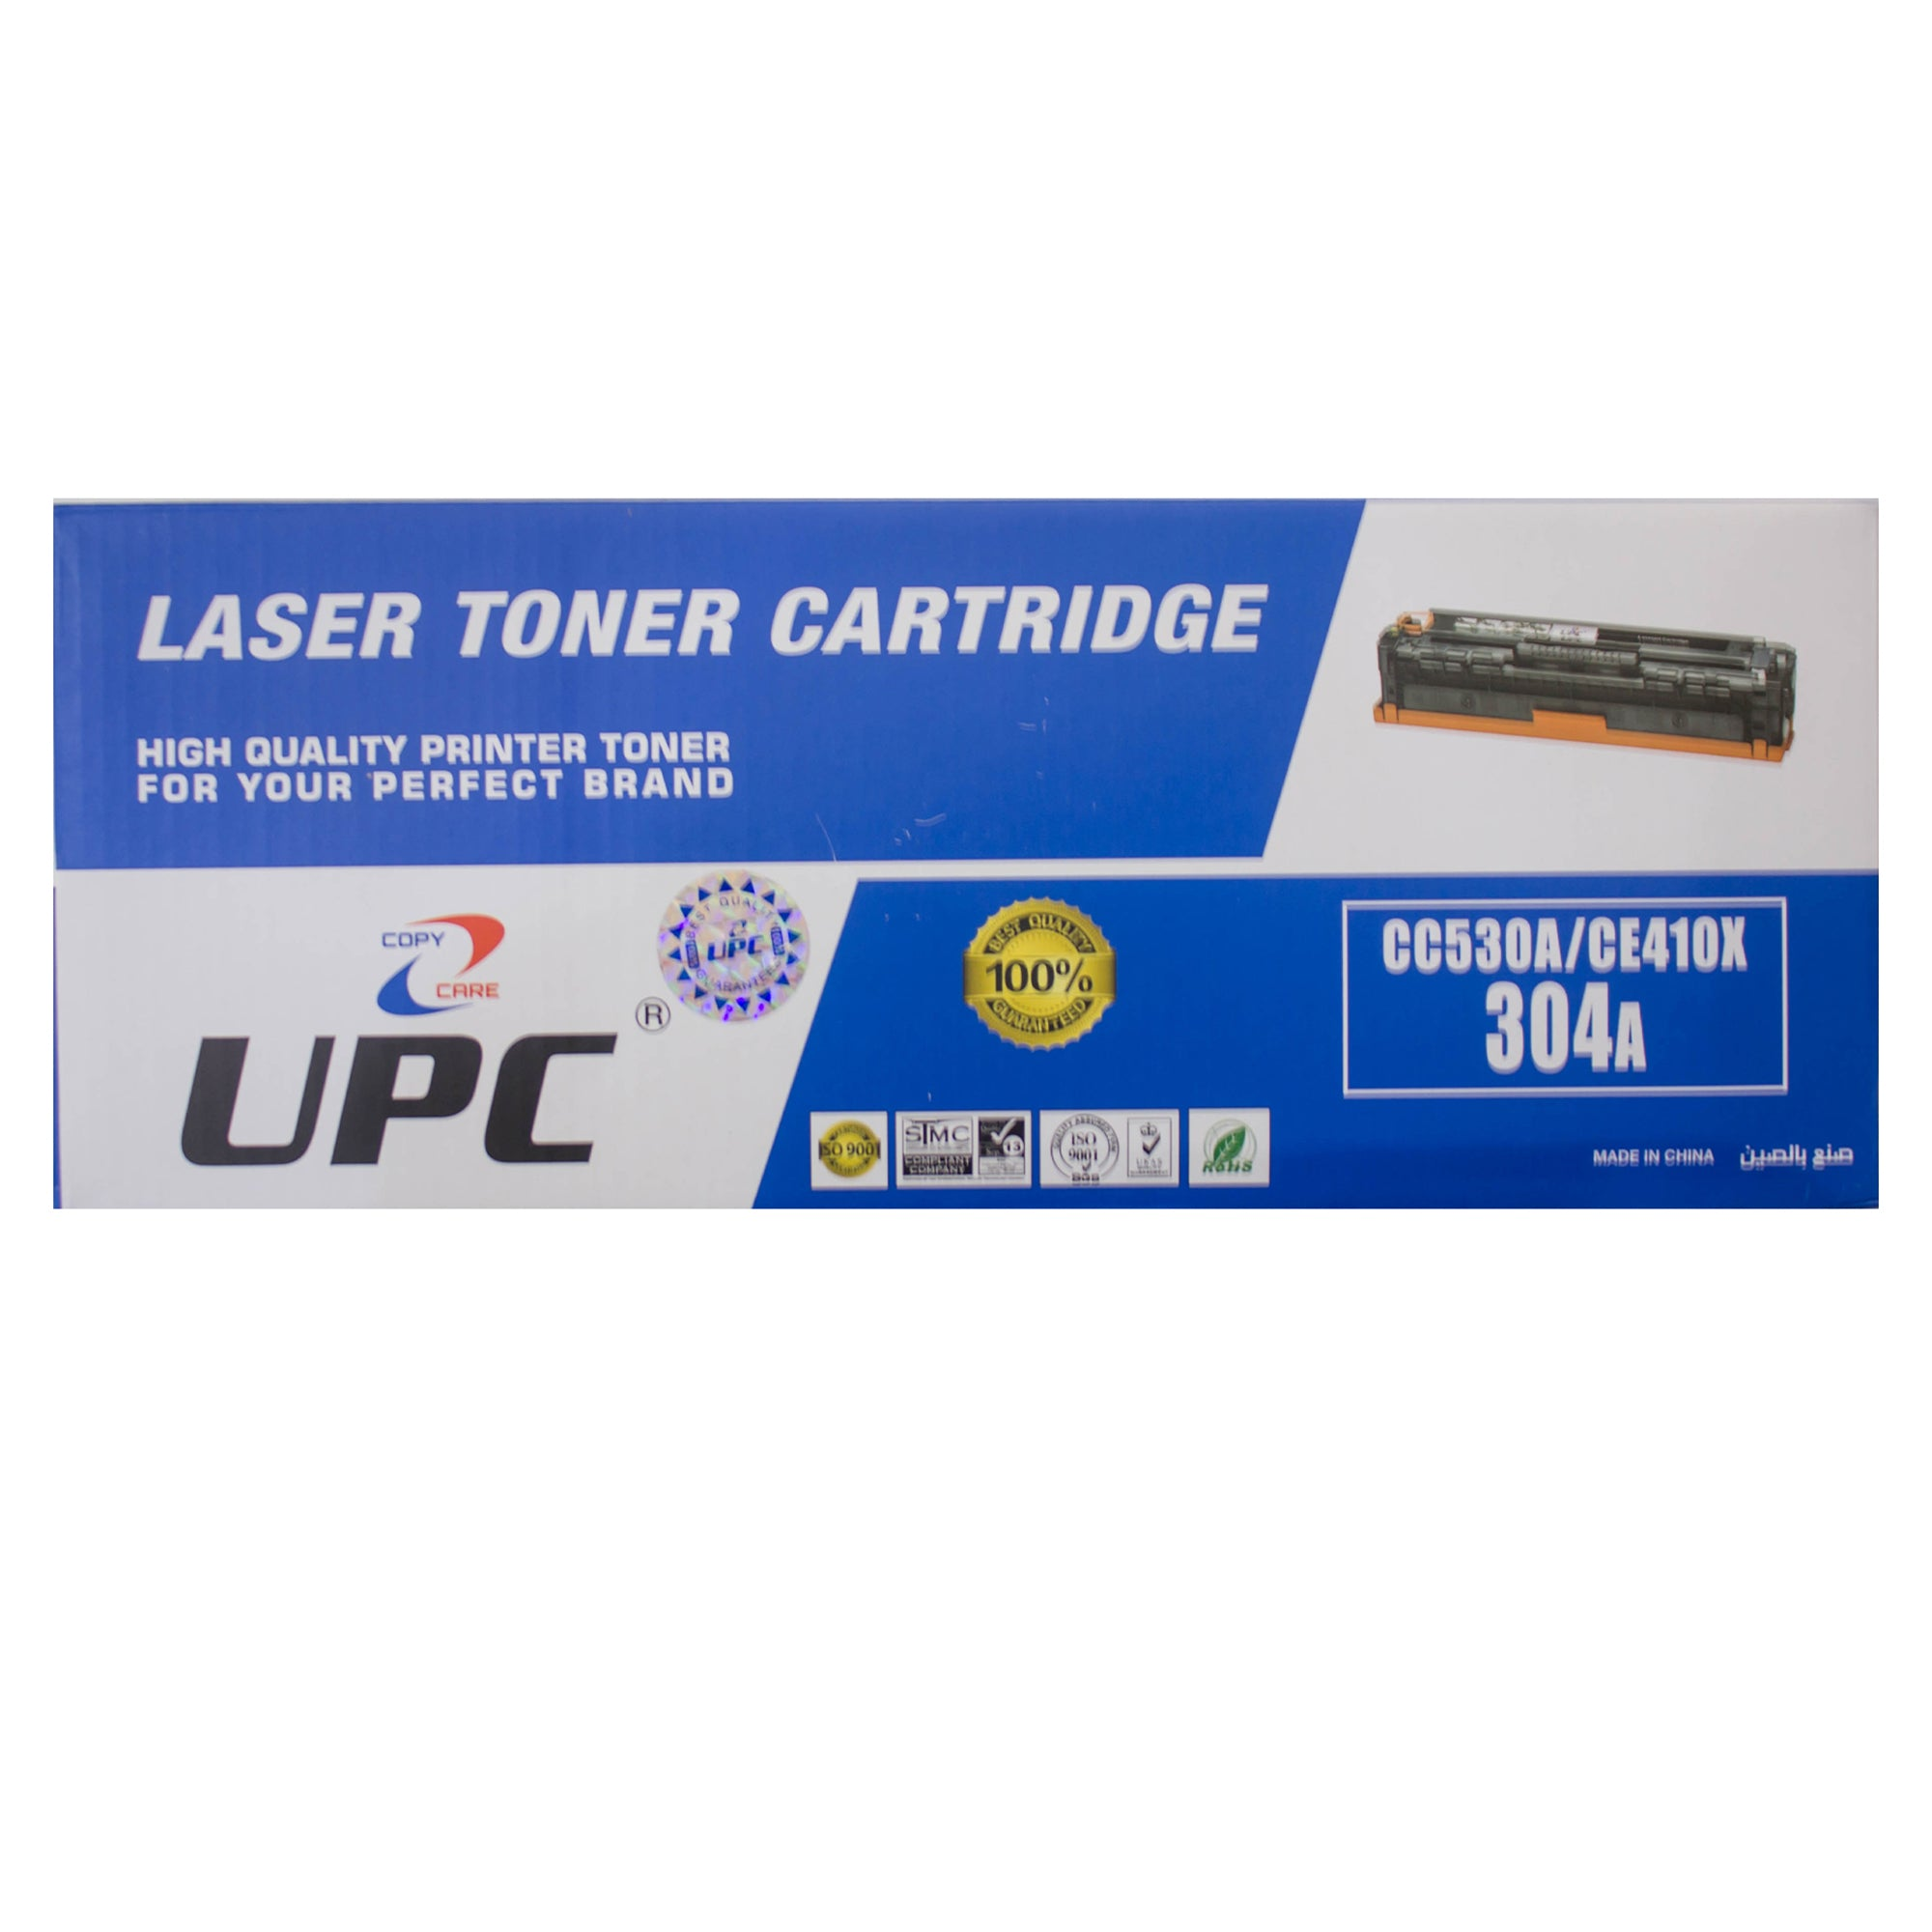 UPC 304A / 305A Laser Toner Cartridge Black (CC530A / CE410X) Compatible with HP Laser Printers